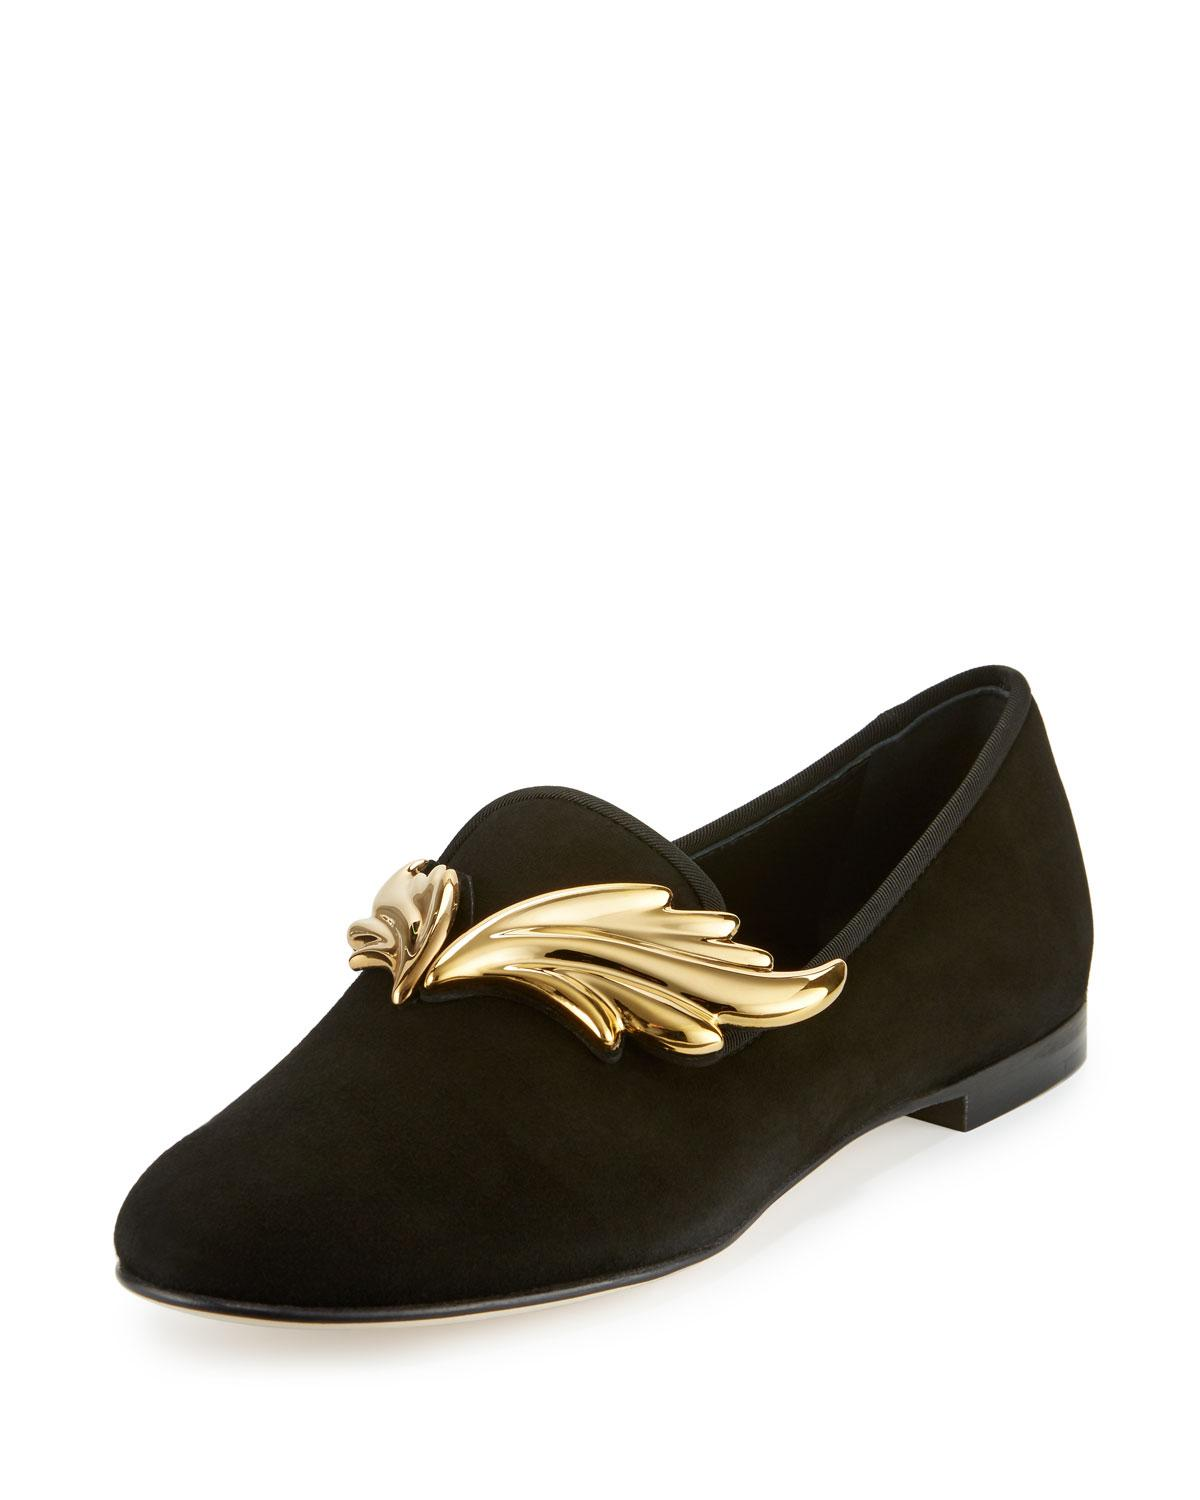 Giuseppe Zanotti. Women's Black Dalila Wings Suede Smoking Slipper